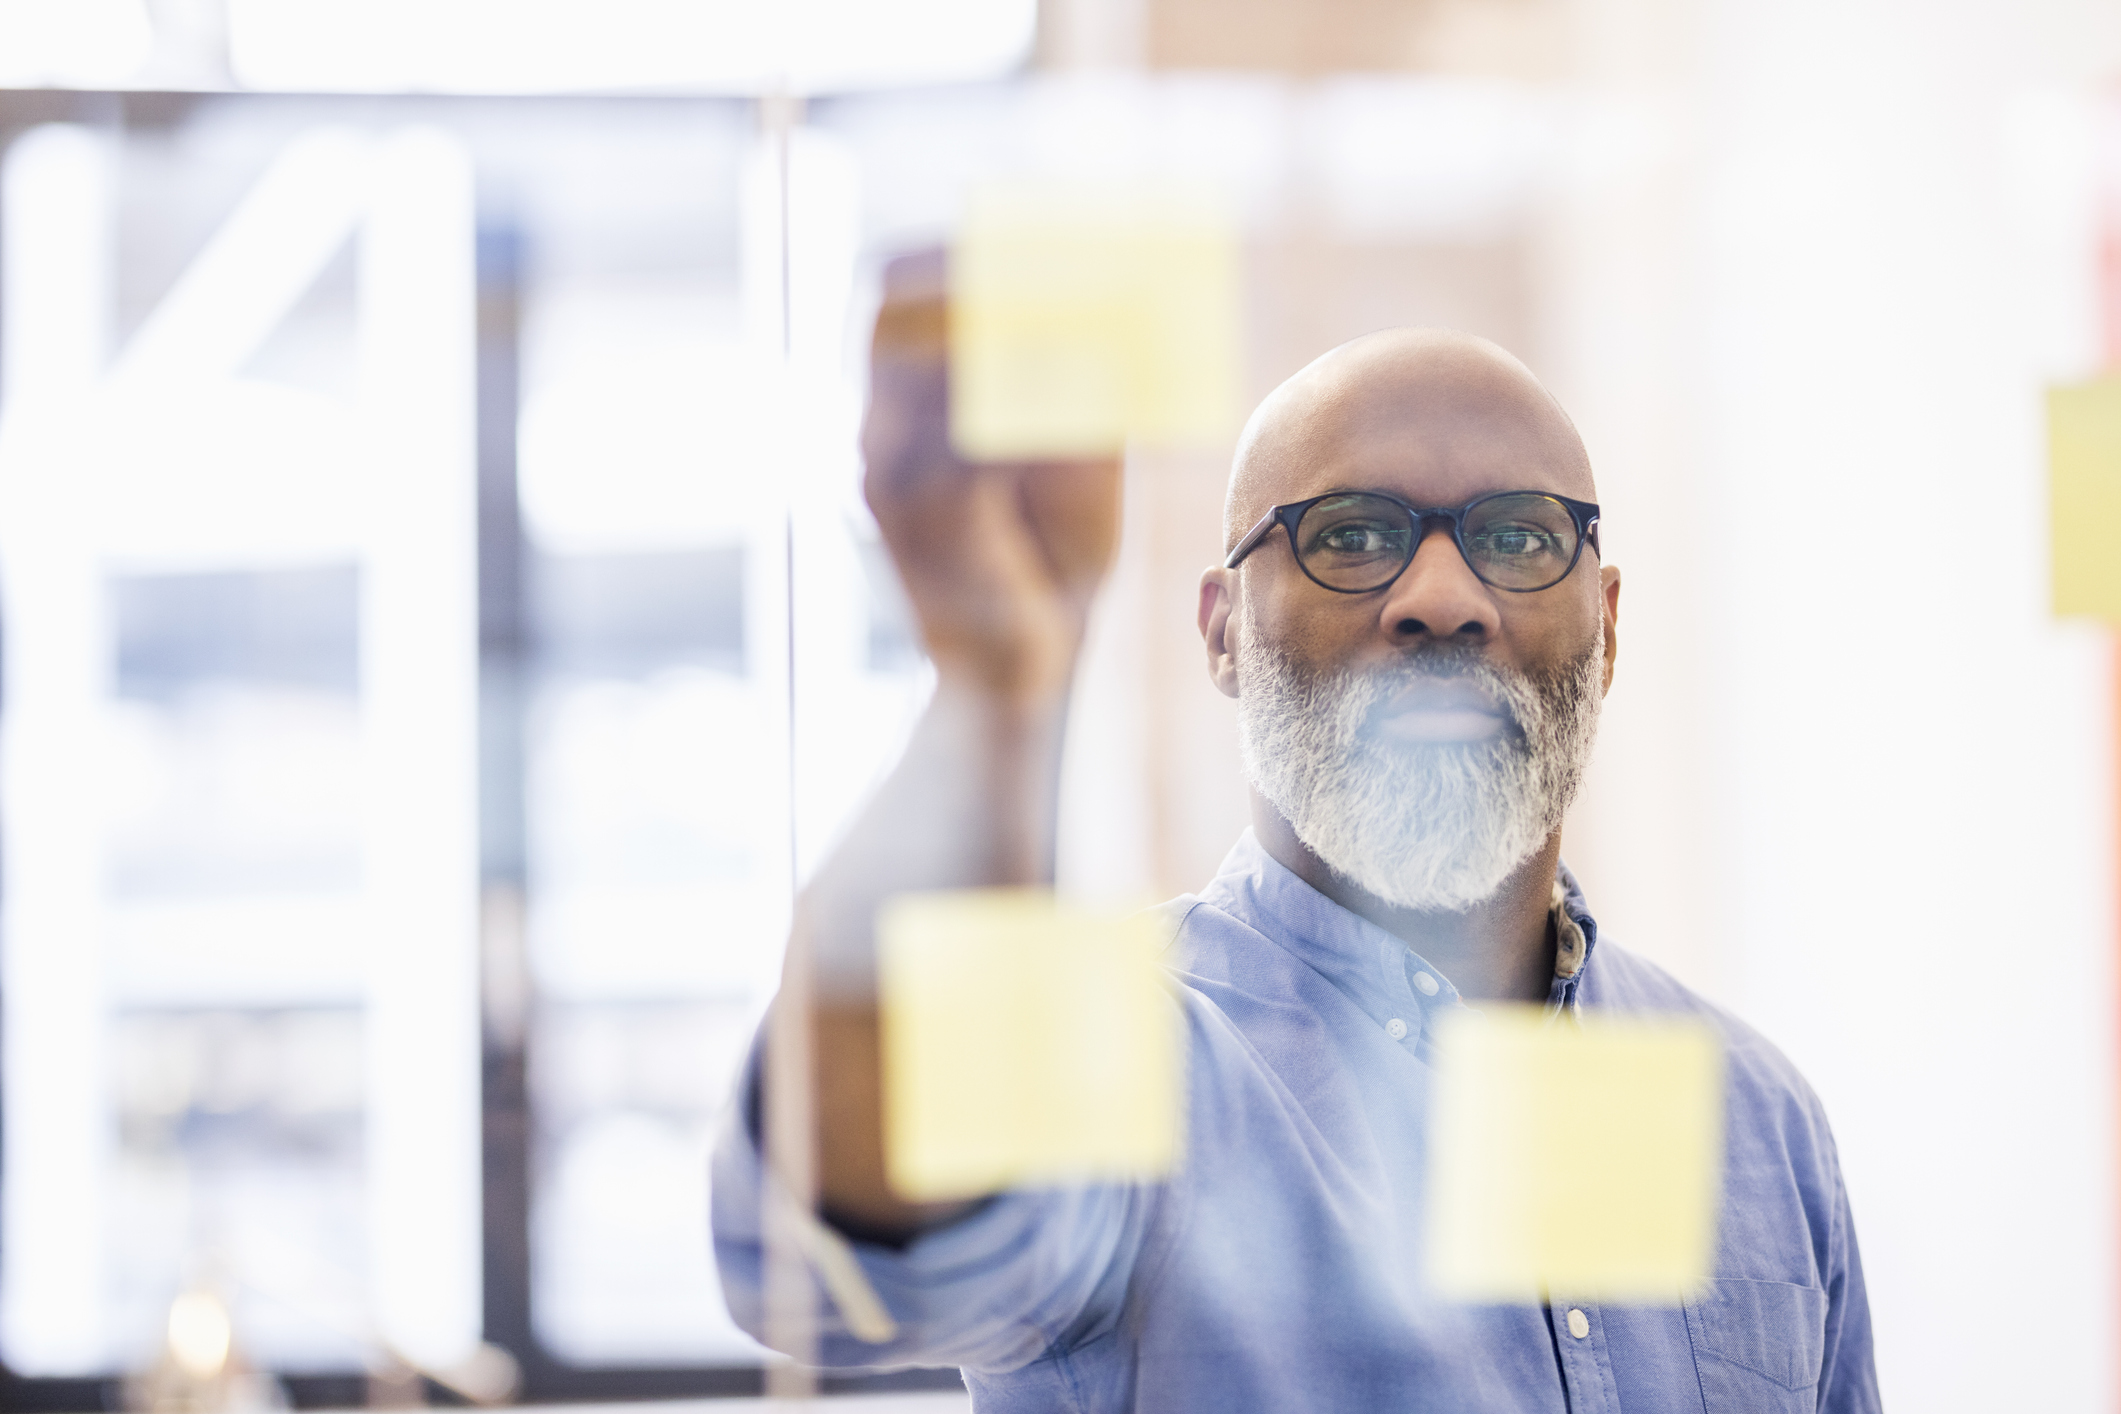 Man taking adhesive note from glass wall in office